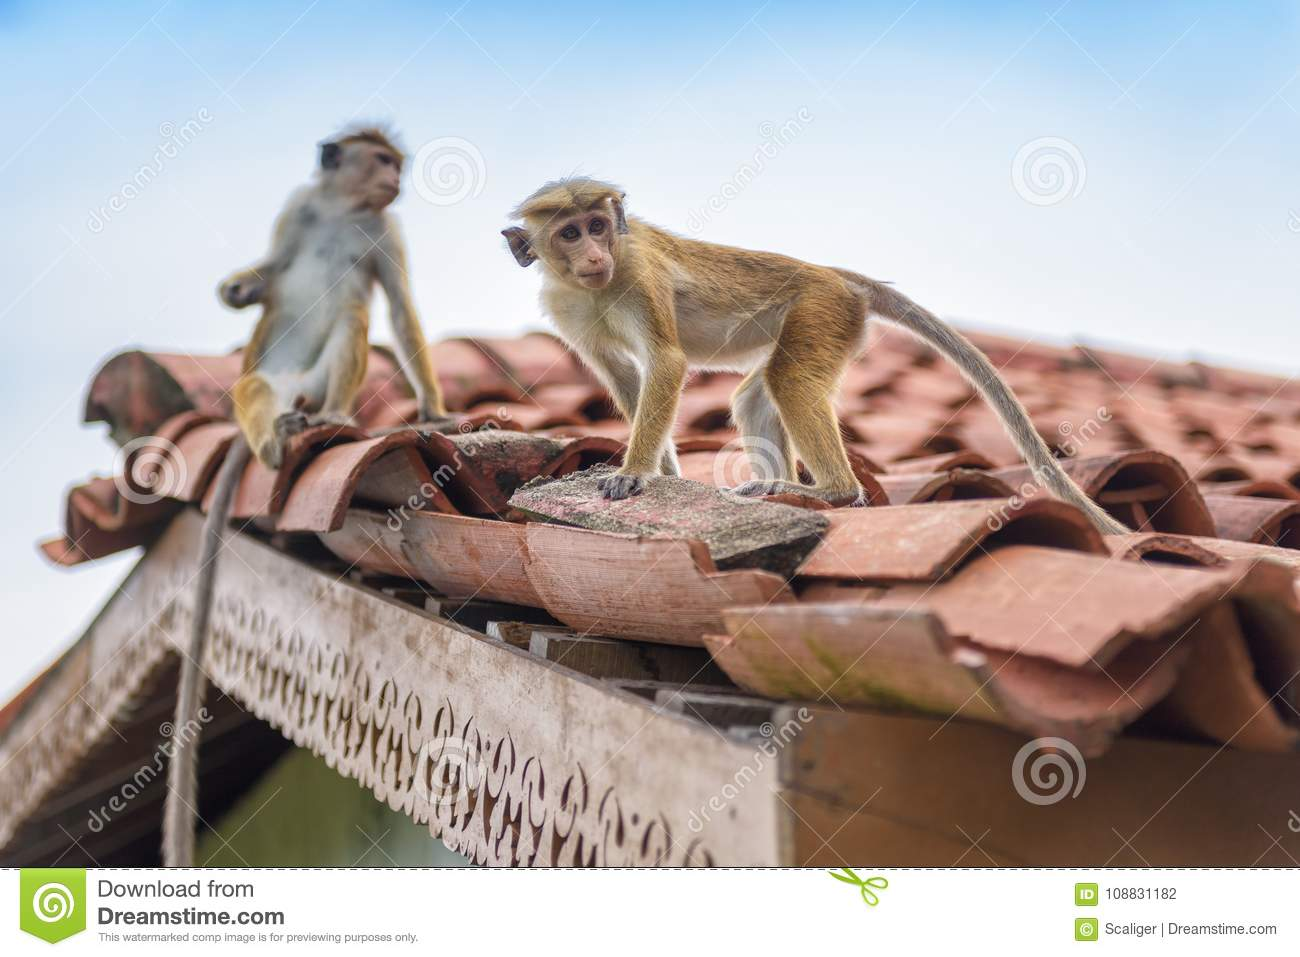 Monkeys are on the ancient Buddhist temple in Sri Lanka